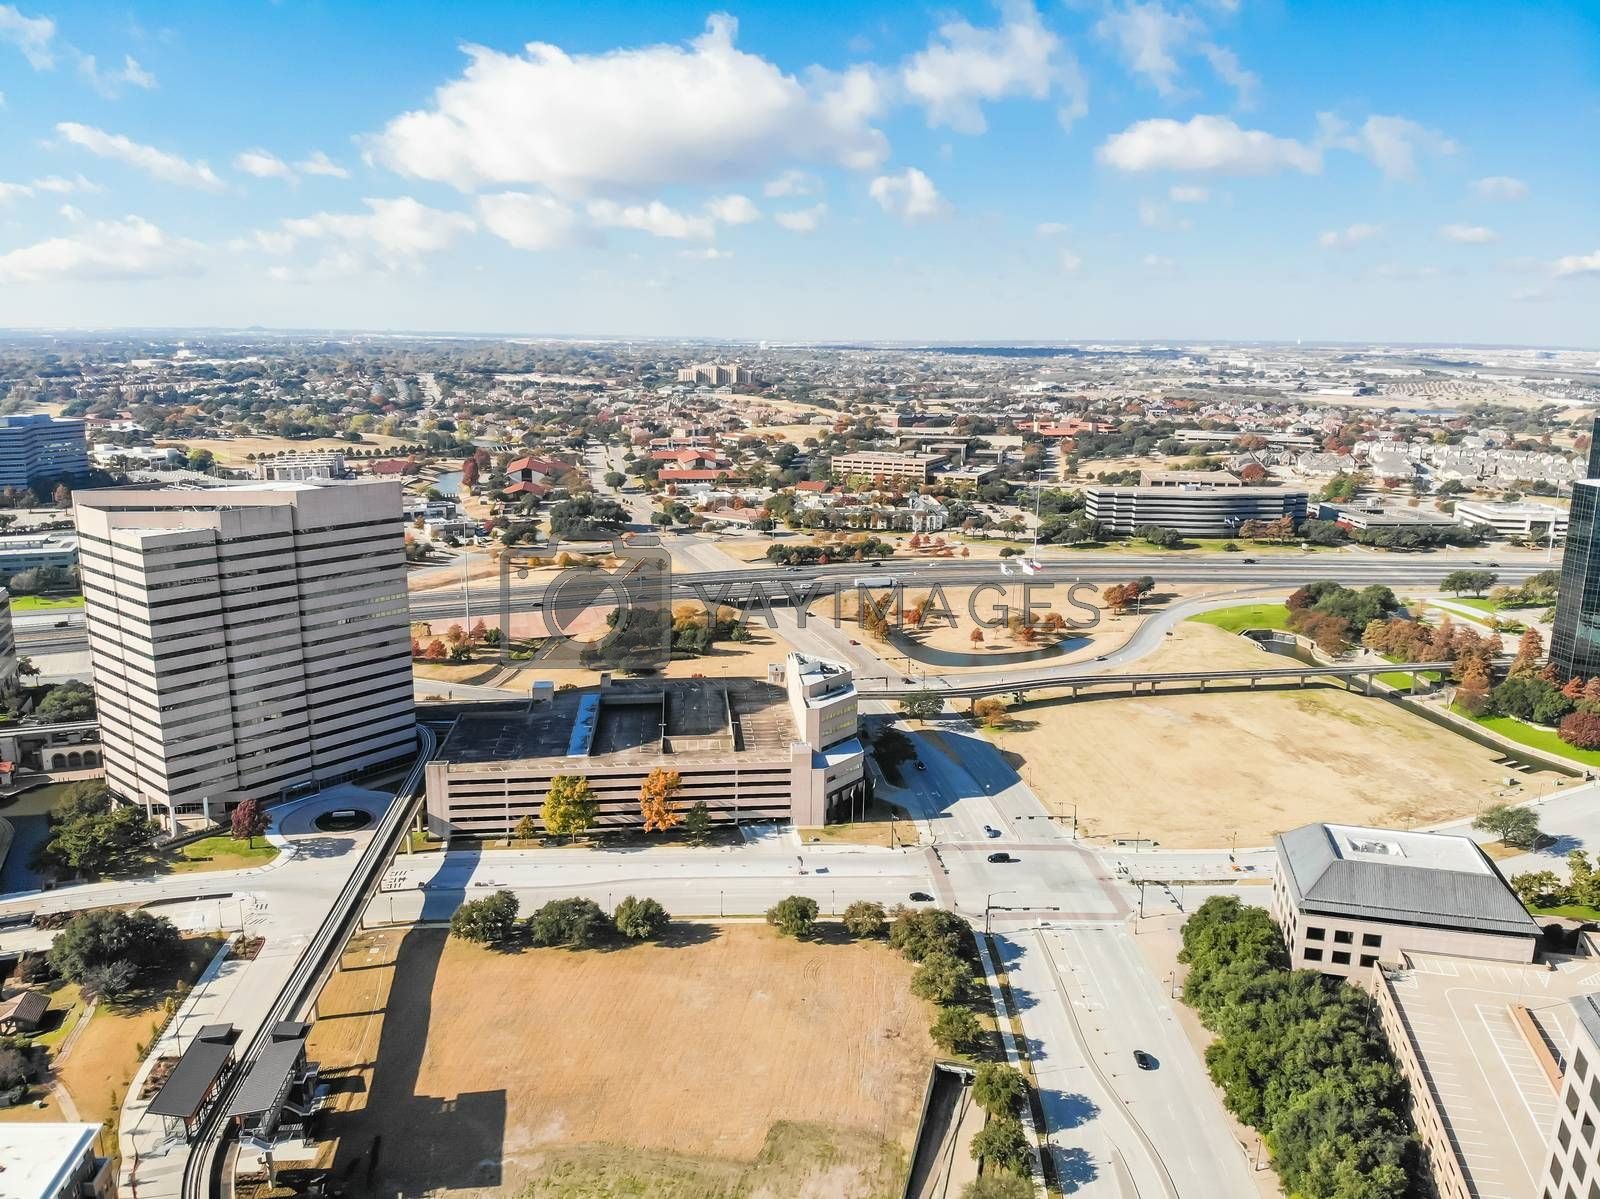 Aerial view downtown Las Colinas, Irving, Texas and light rail system (Area Personal Transit, APT). Las Colinas is an upscale, developed area in the Dallas suburb